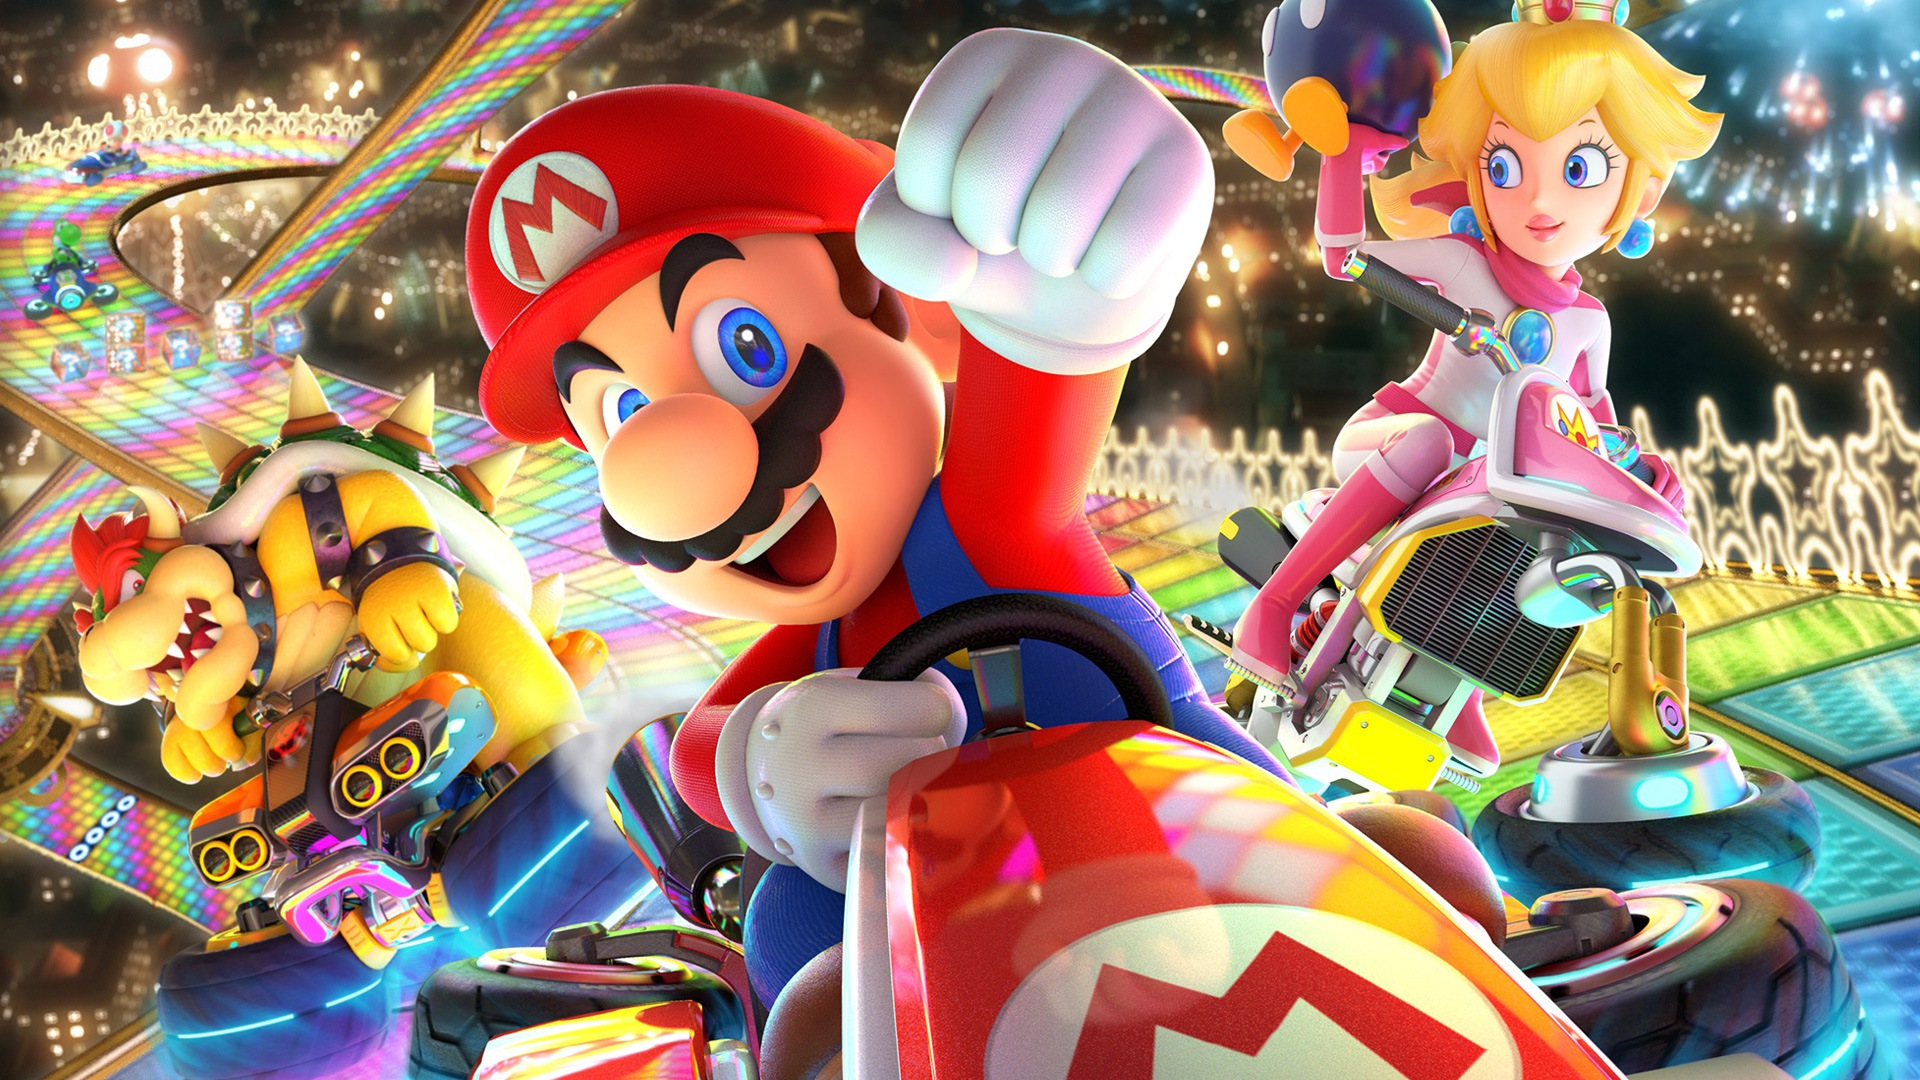 Mario Kart 8 Is Holding Their North American Open On September 22, If You Move Fast Enough You Can Win $25 In Nintendo Eshop Credit